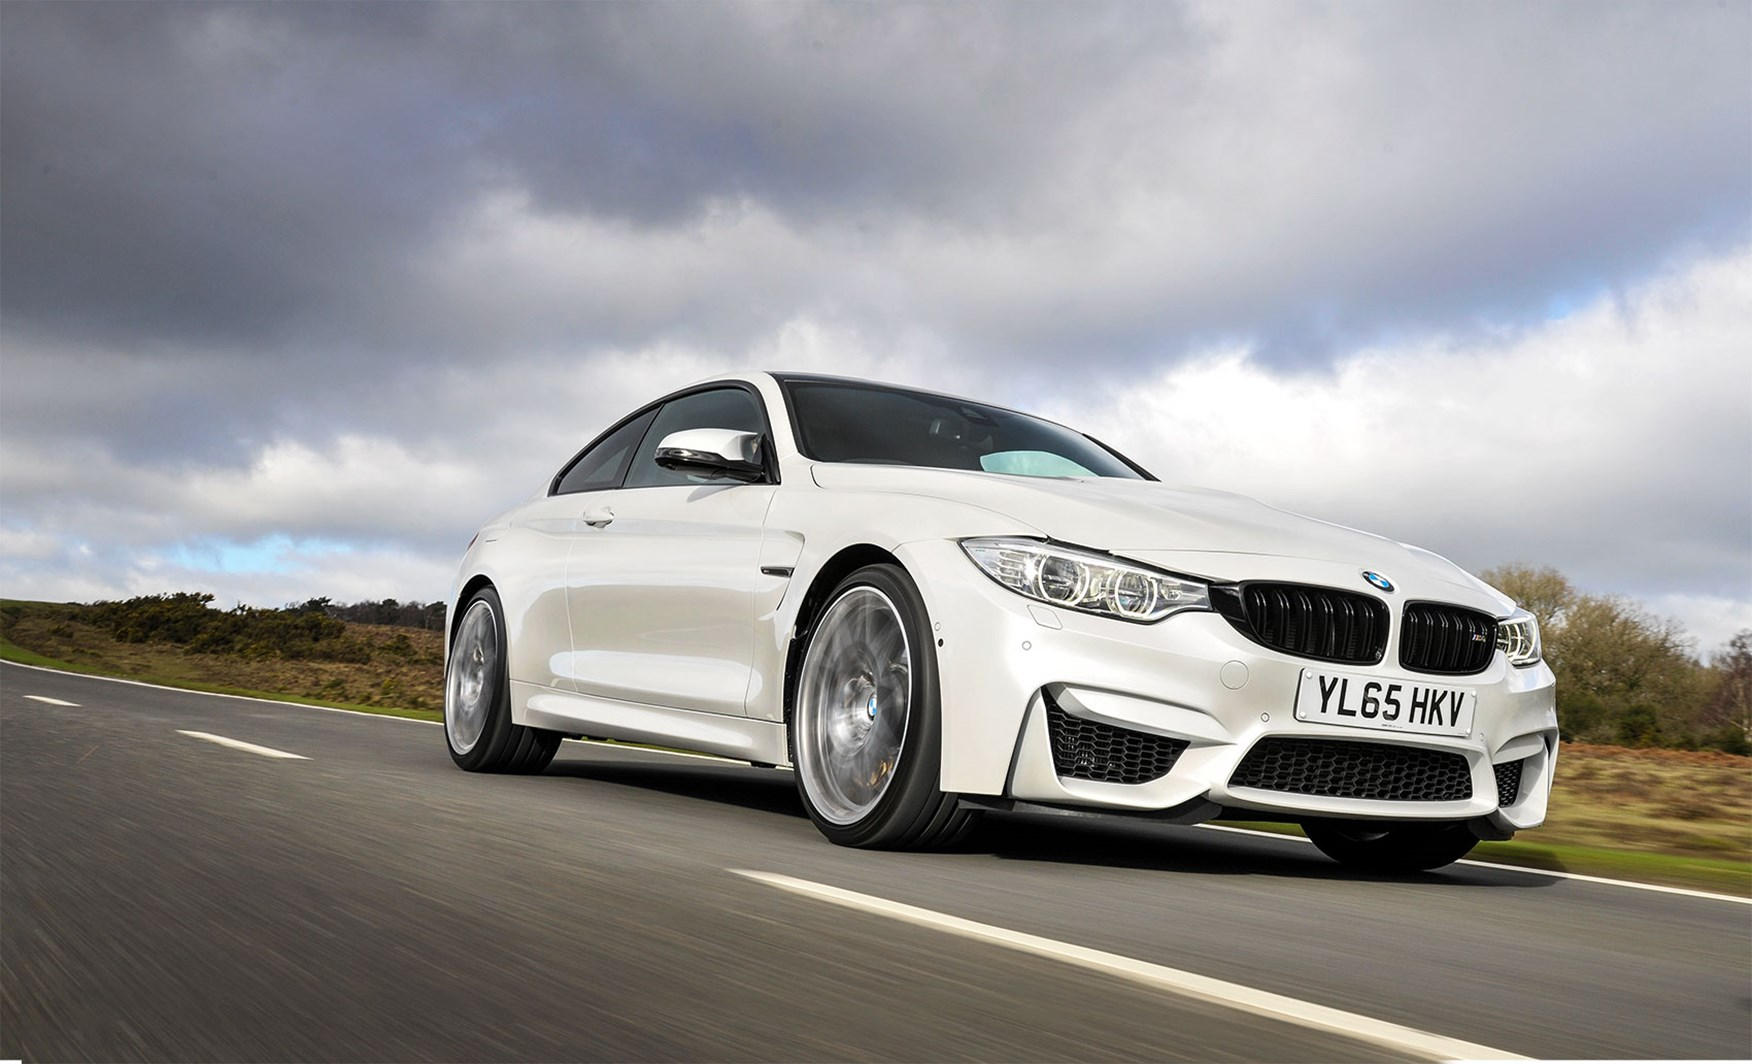 Mad Max Car For Sale Uk >> Pack's more like it: BMW M3/M4 Competition Pack first drive, CAR+ May 2016 | CAR Magazine